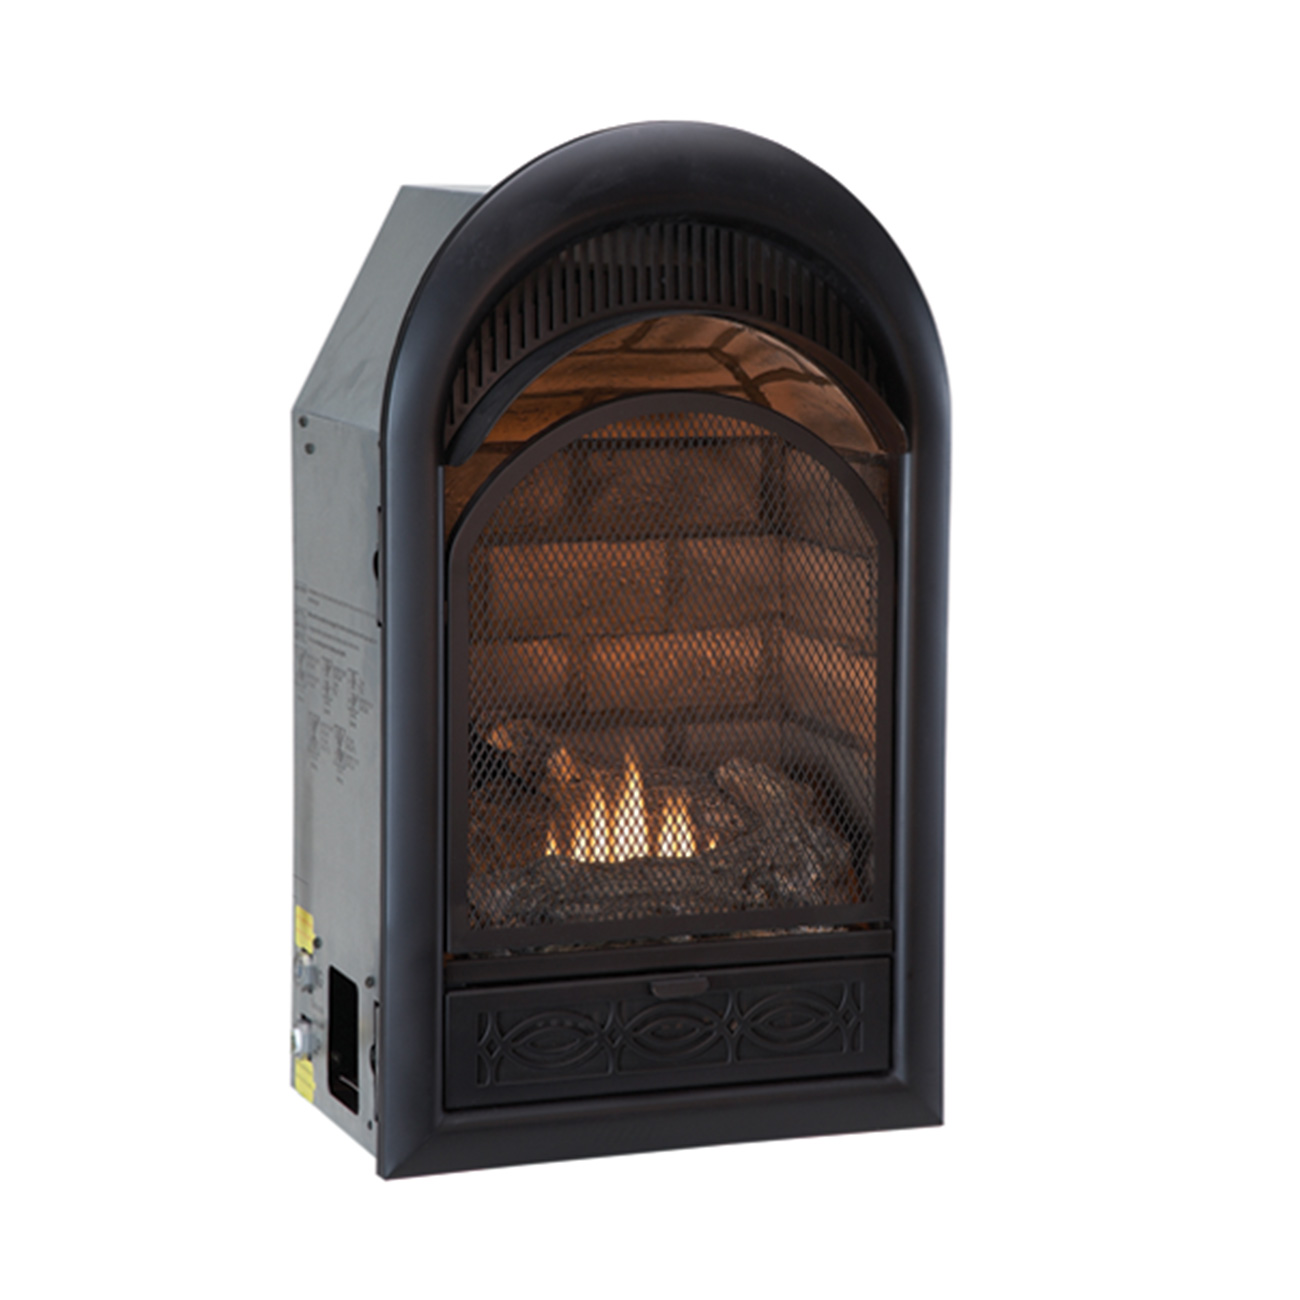 Ventless Dual Fuel Fireplace Insert